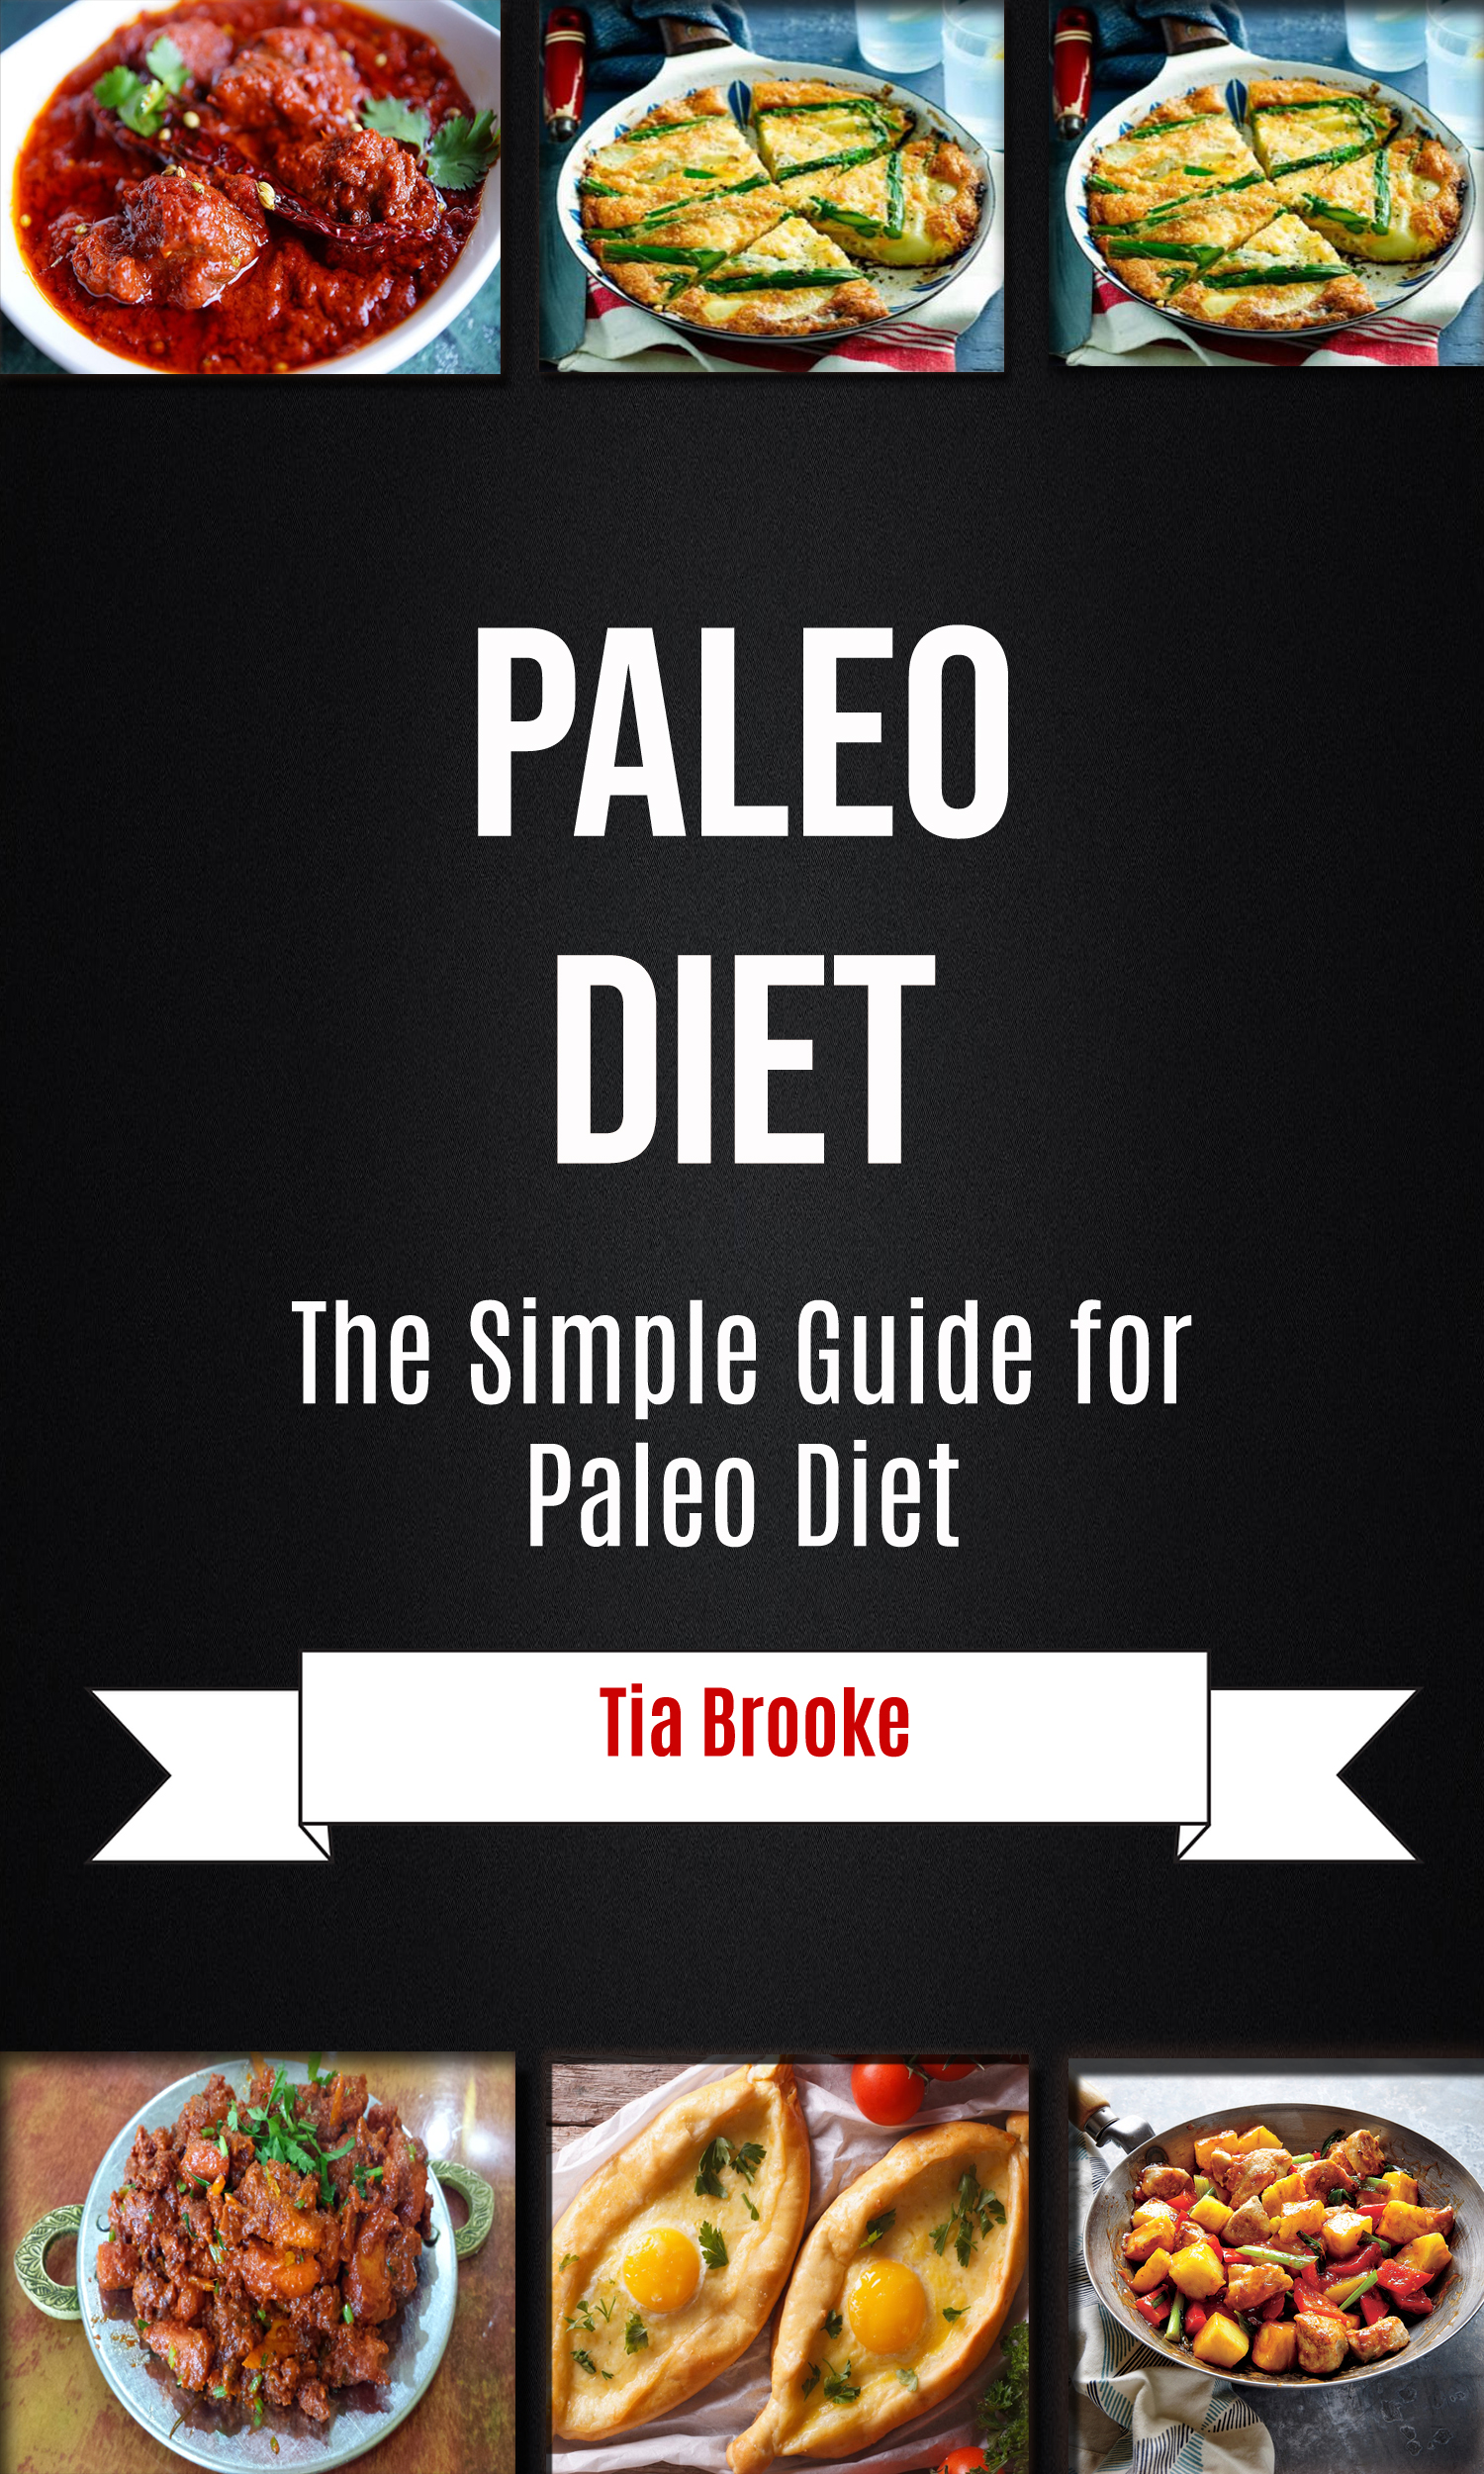 Paleo diet: the simple guide for paleo diet